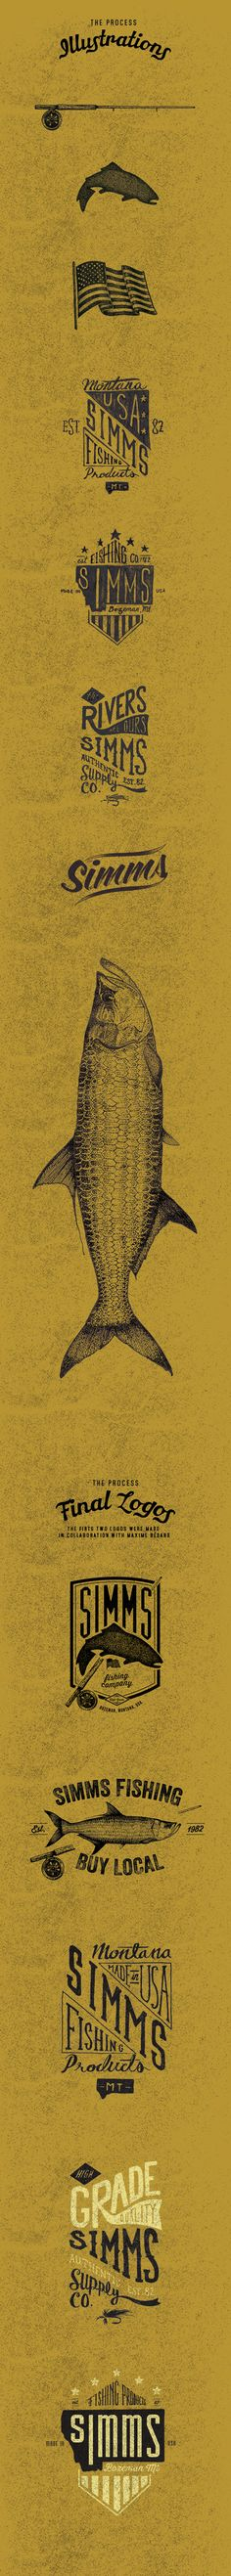 Simms Fishing Clothing Logos 2015 by Carl Bédard, via Behance type hand lettering logo illustration graphic design